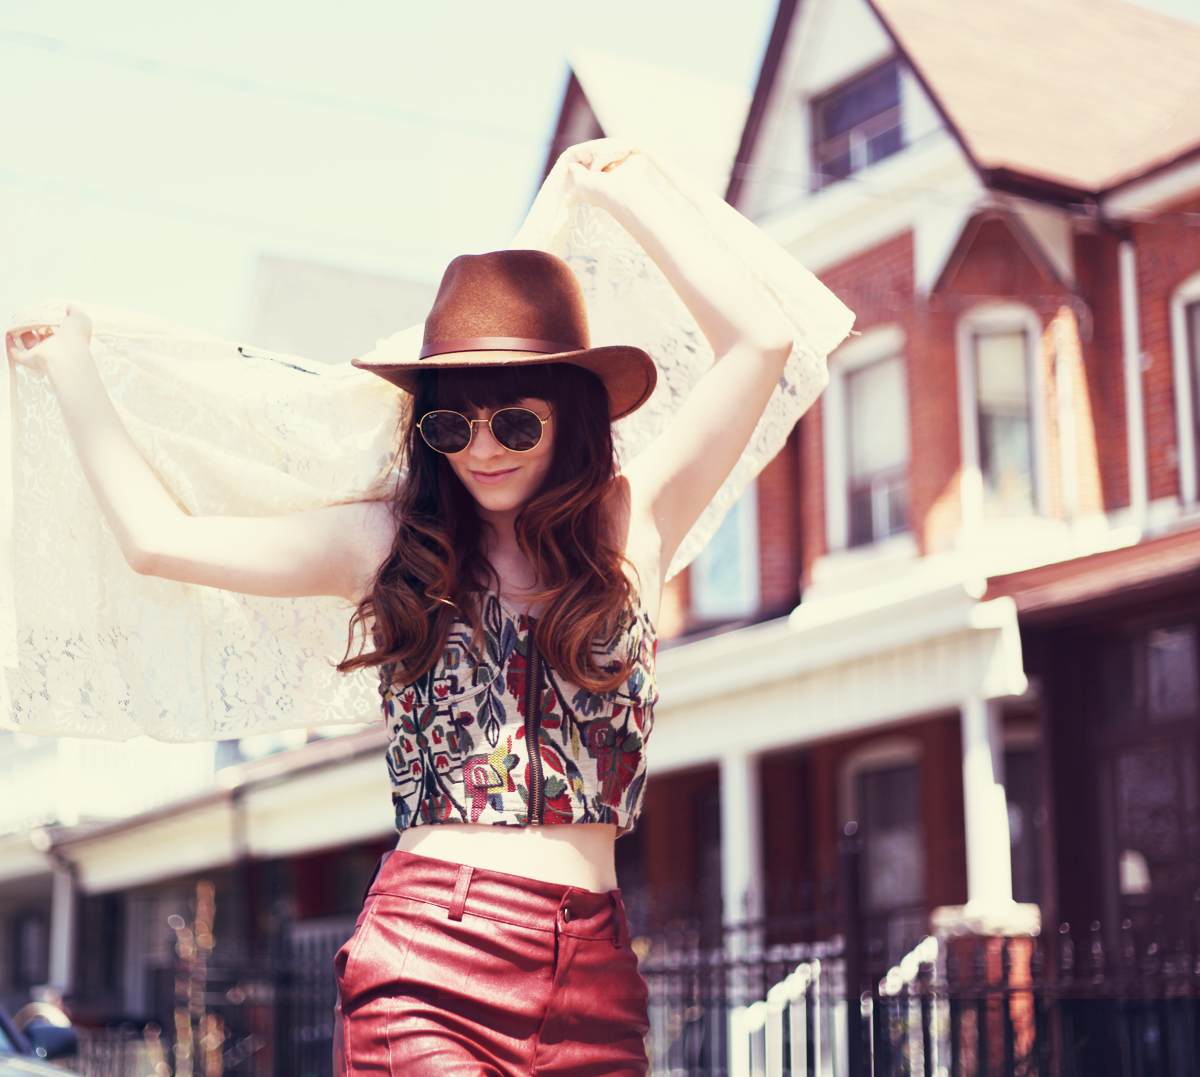 Fashion blogger style blog inspiration for spring summer volcom looks